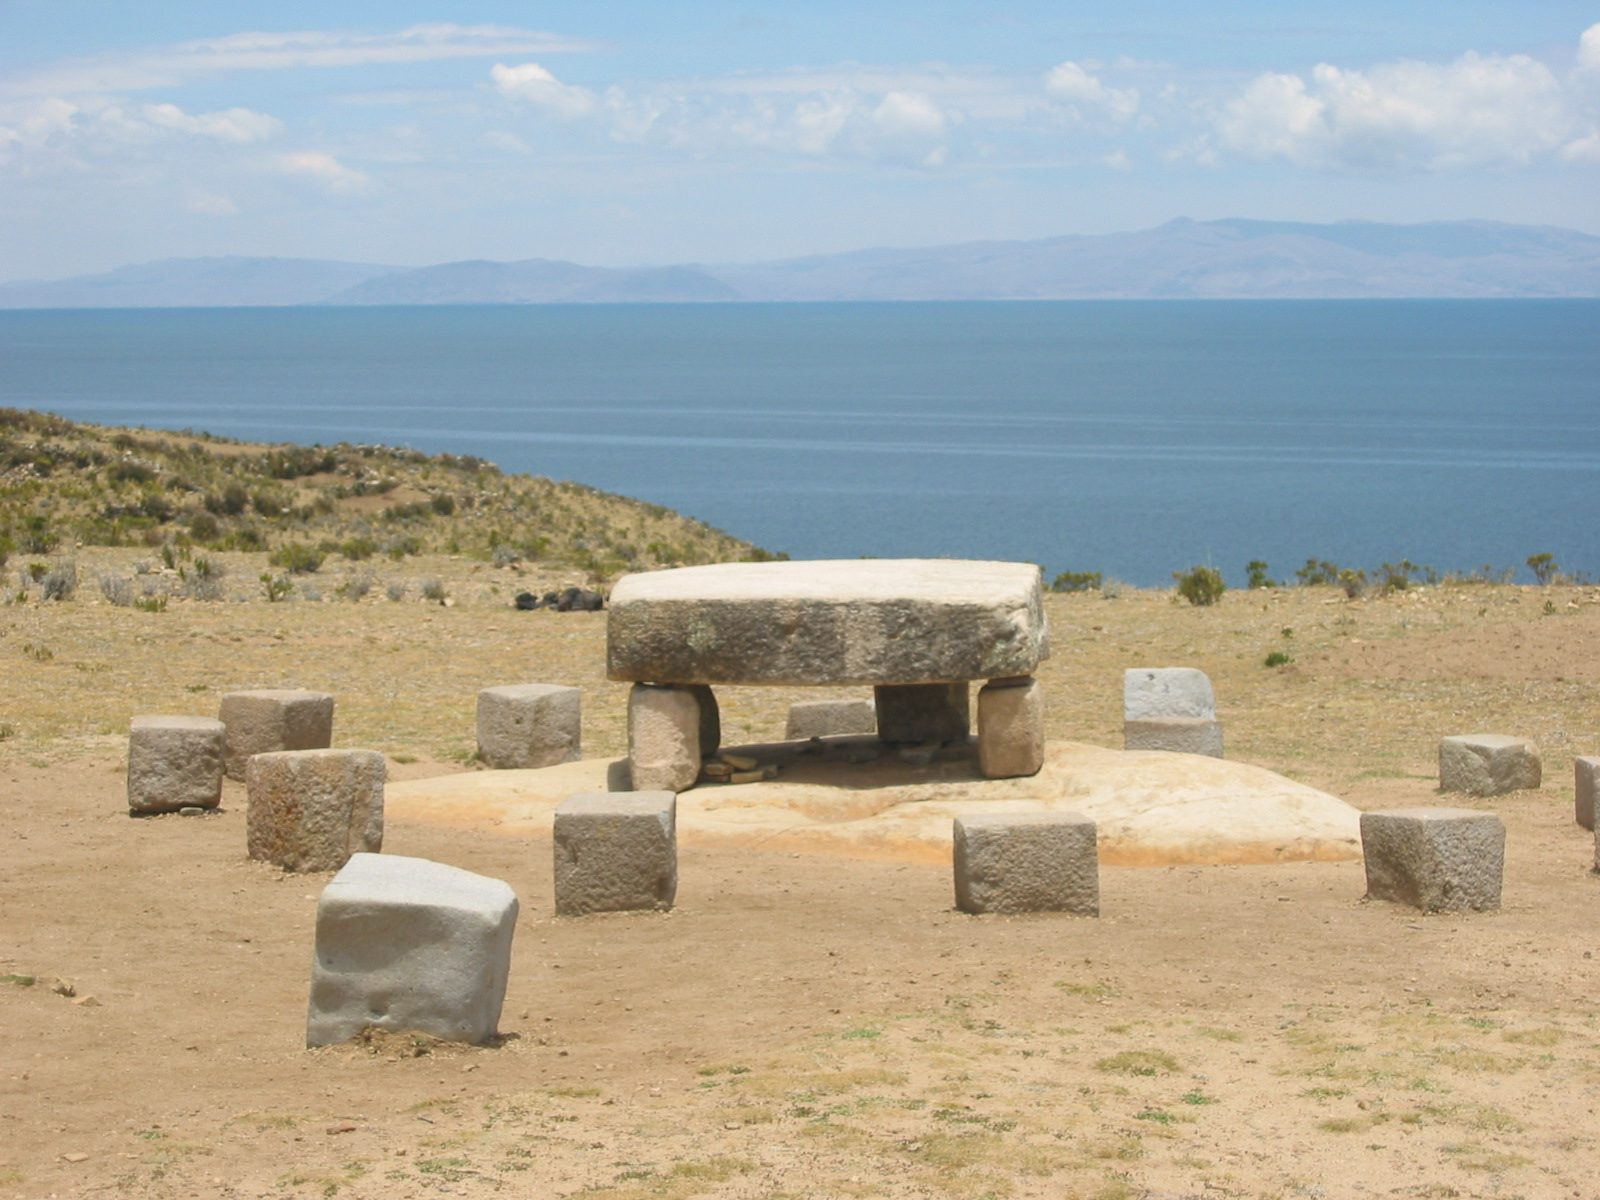 Stone altars are still used today for sacrifice.